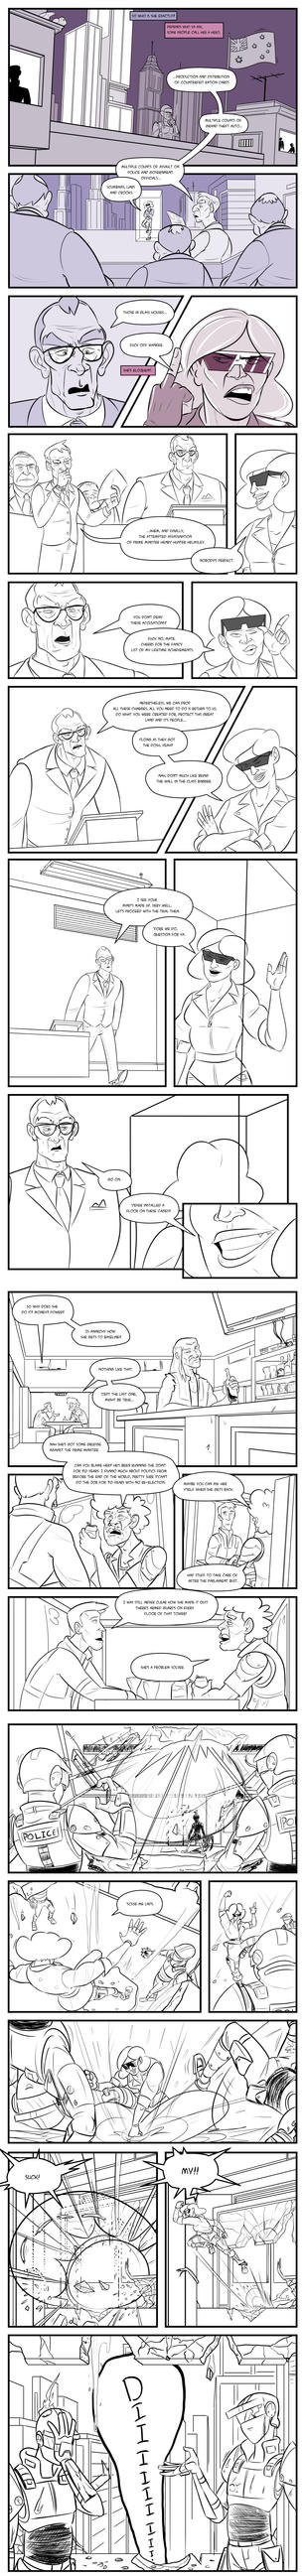 Second Draft OCT - Audition - Page 1 by Angry-Langman